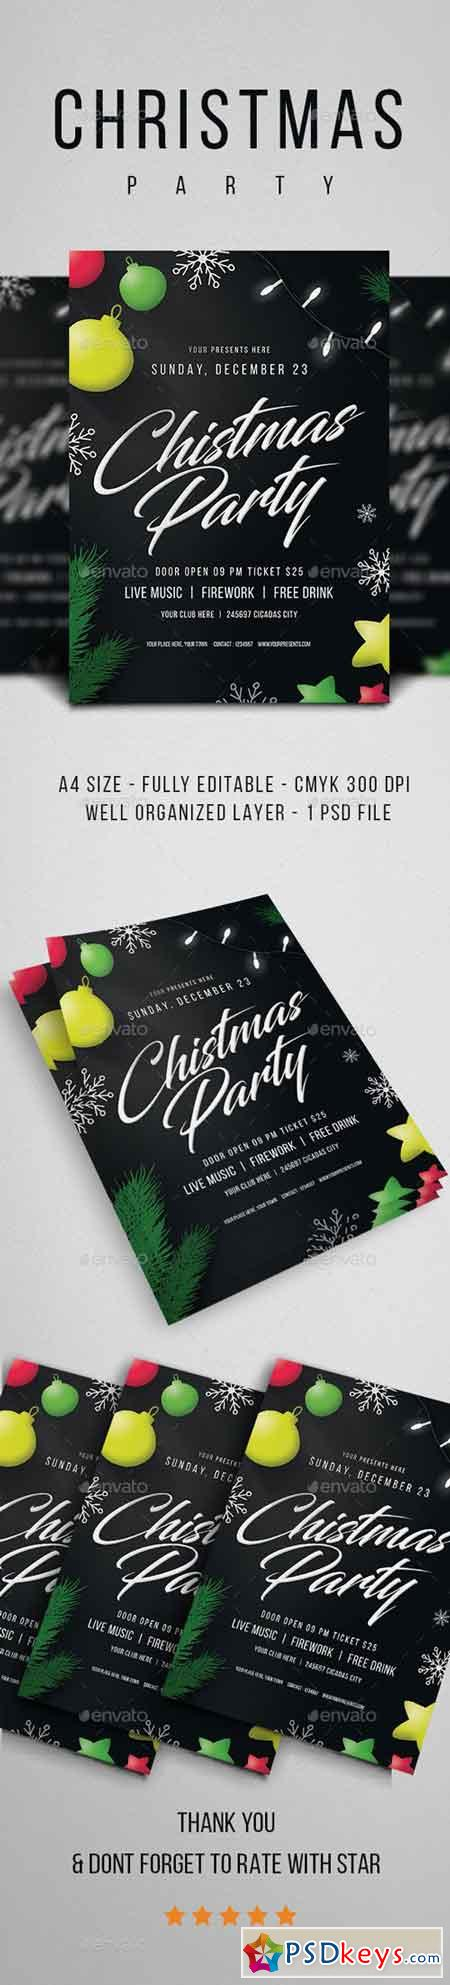 Christmas Party Flyer Vol.4 21072603